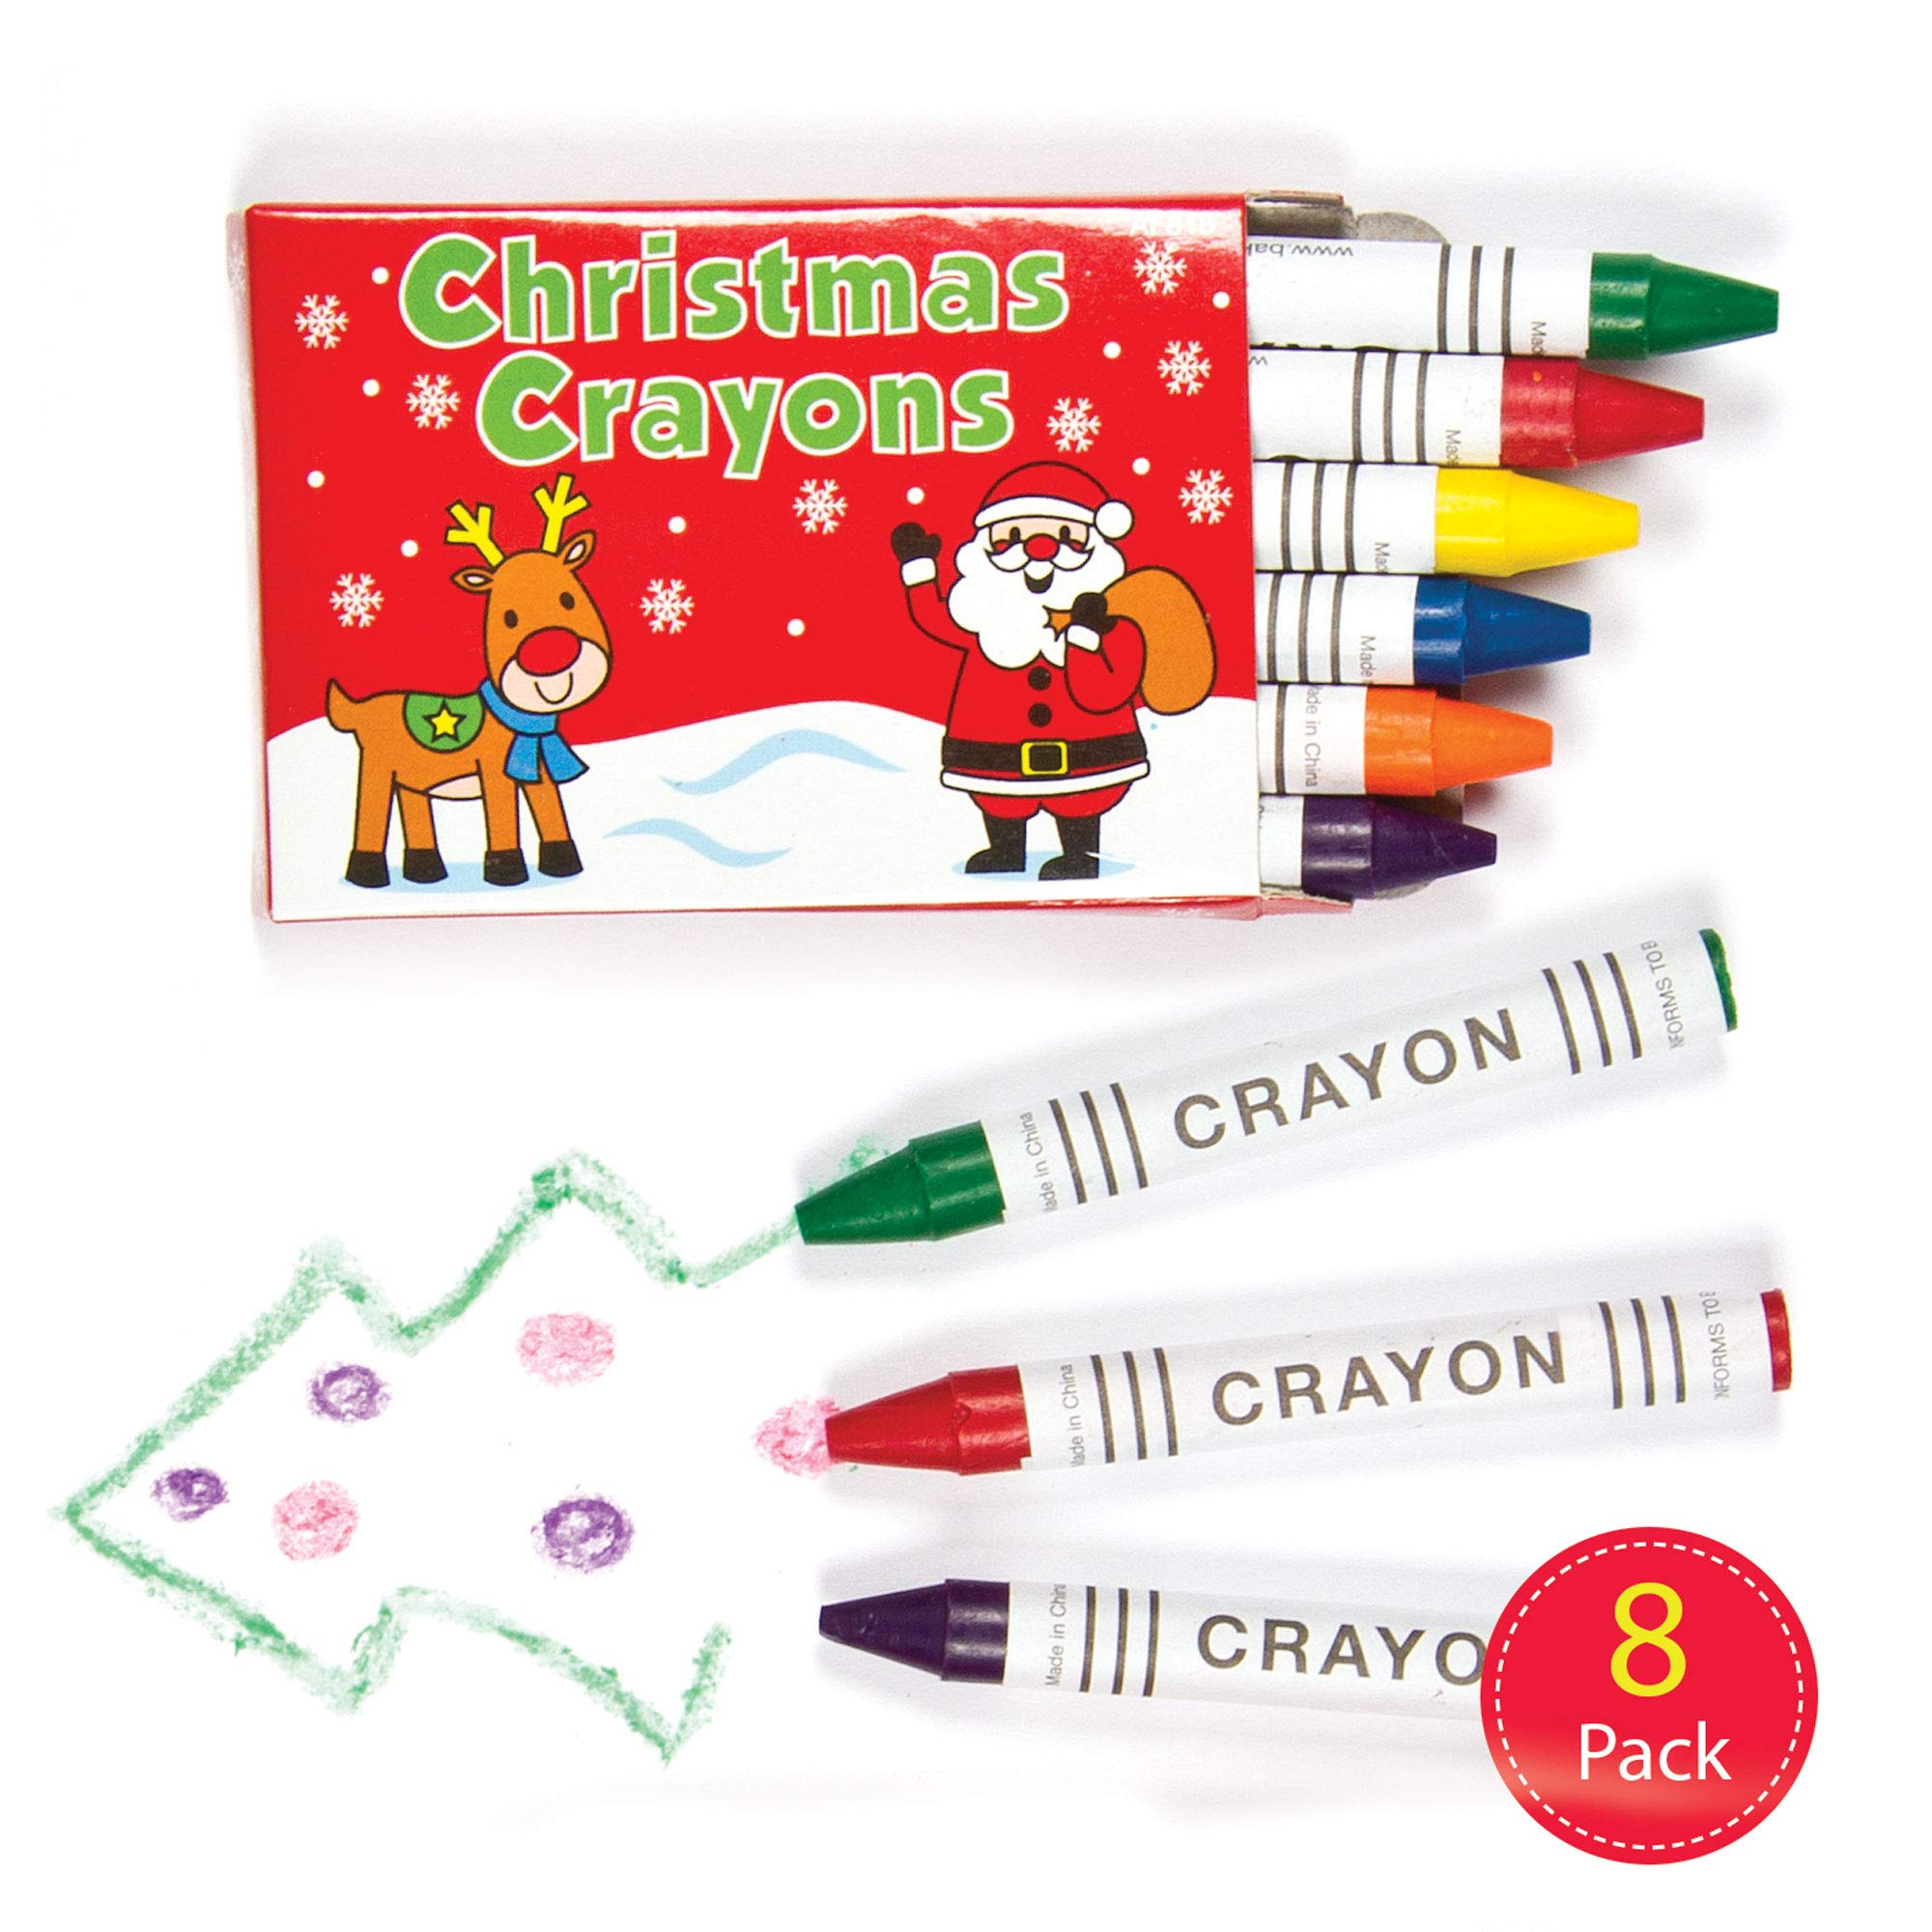 Baker Ross Mini Christmas Crayons — Creative Art Supplies for Kids' Crafts, Projects and Decorations, Perfect Party, Loot or Stocking Filler (Pack of 8 Sets)